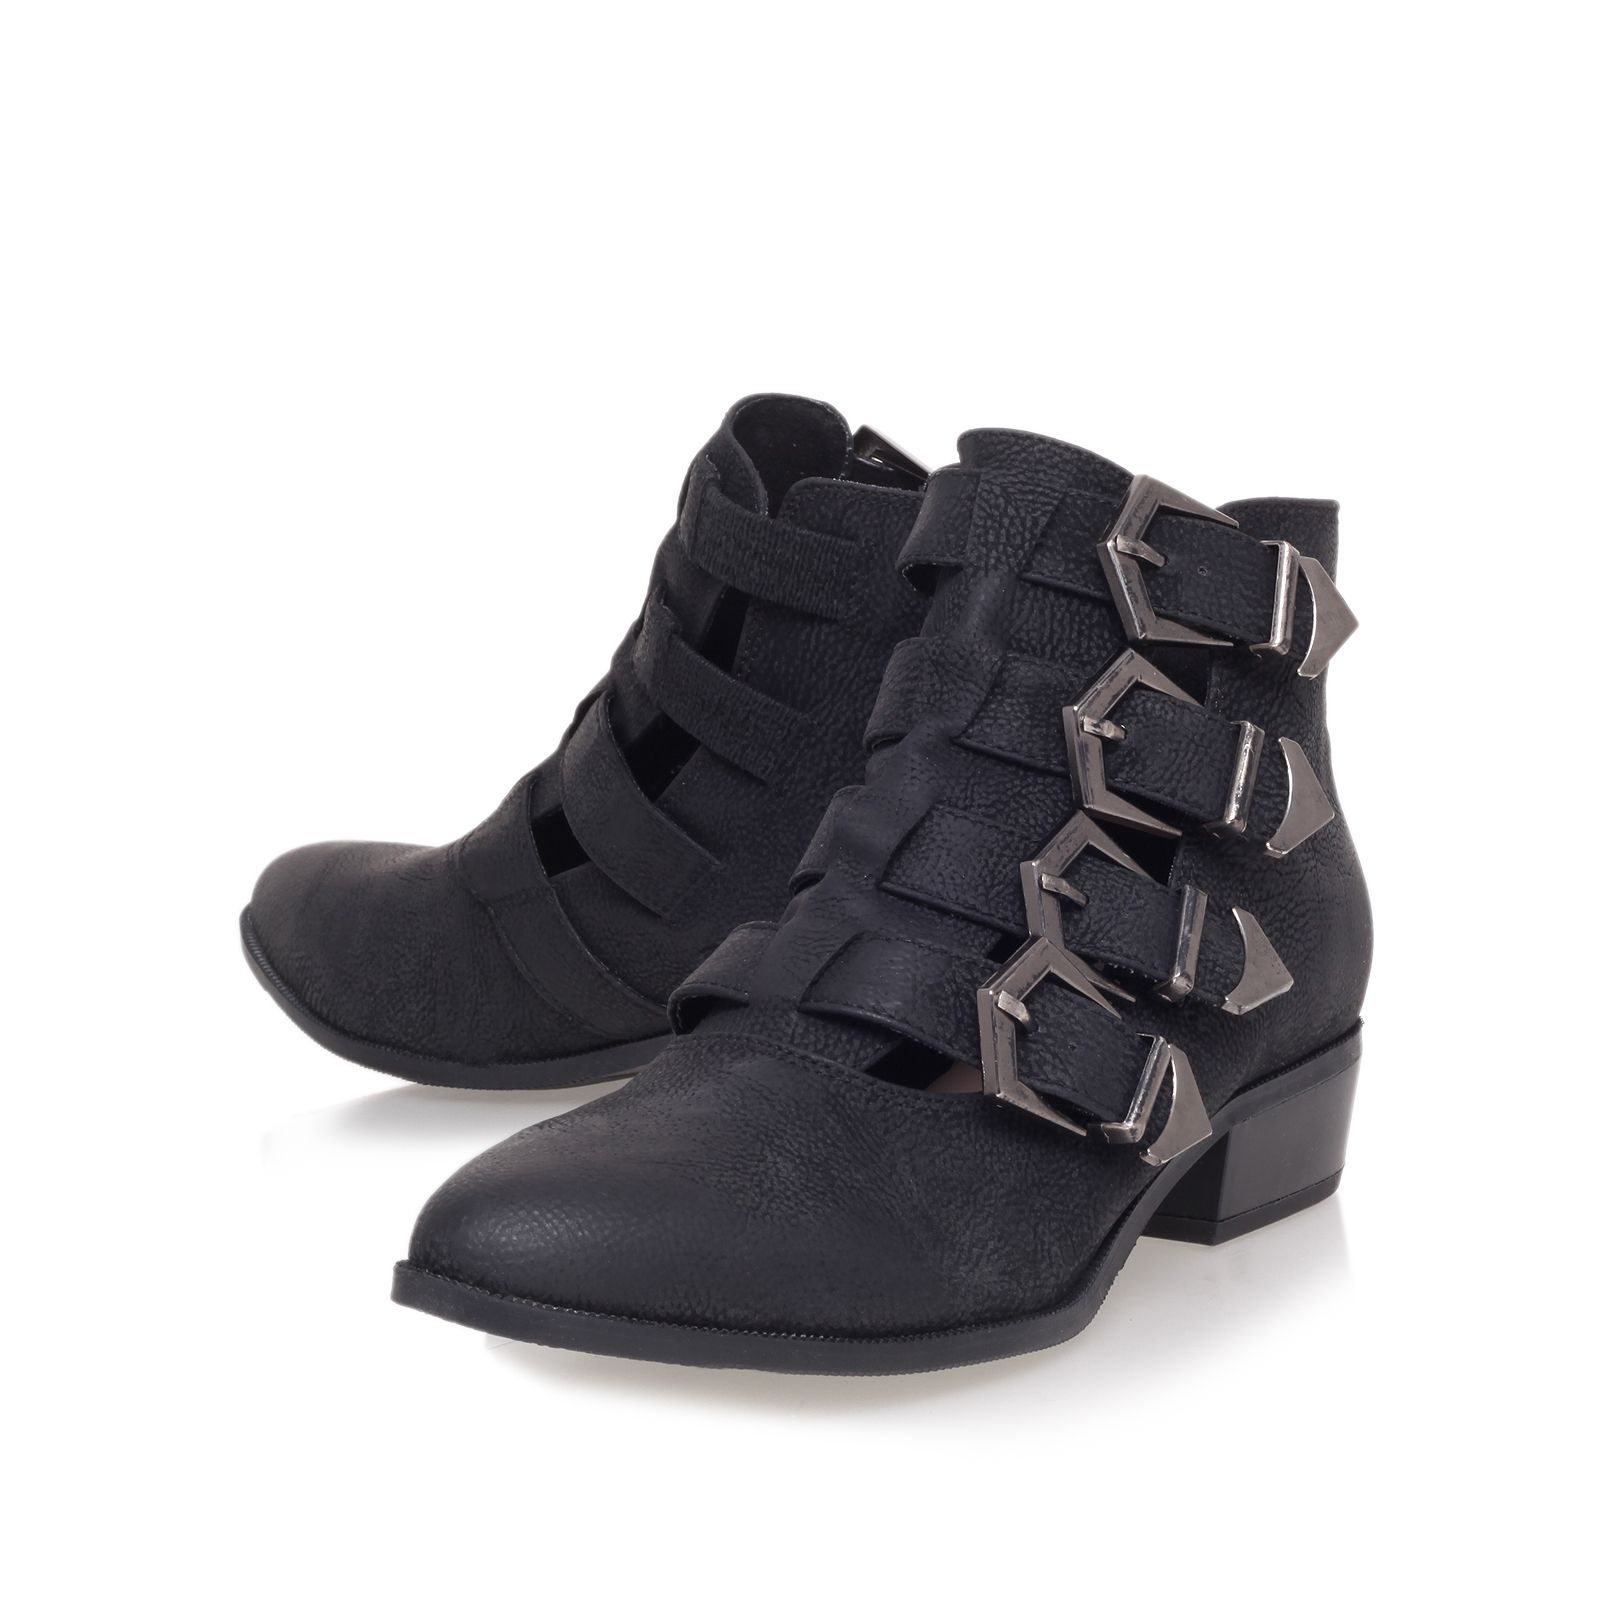 Buster low heel ankle boots